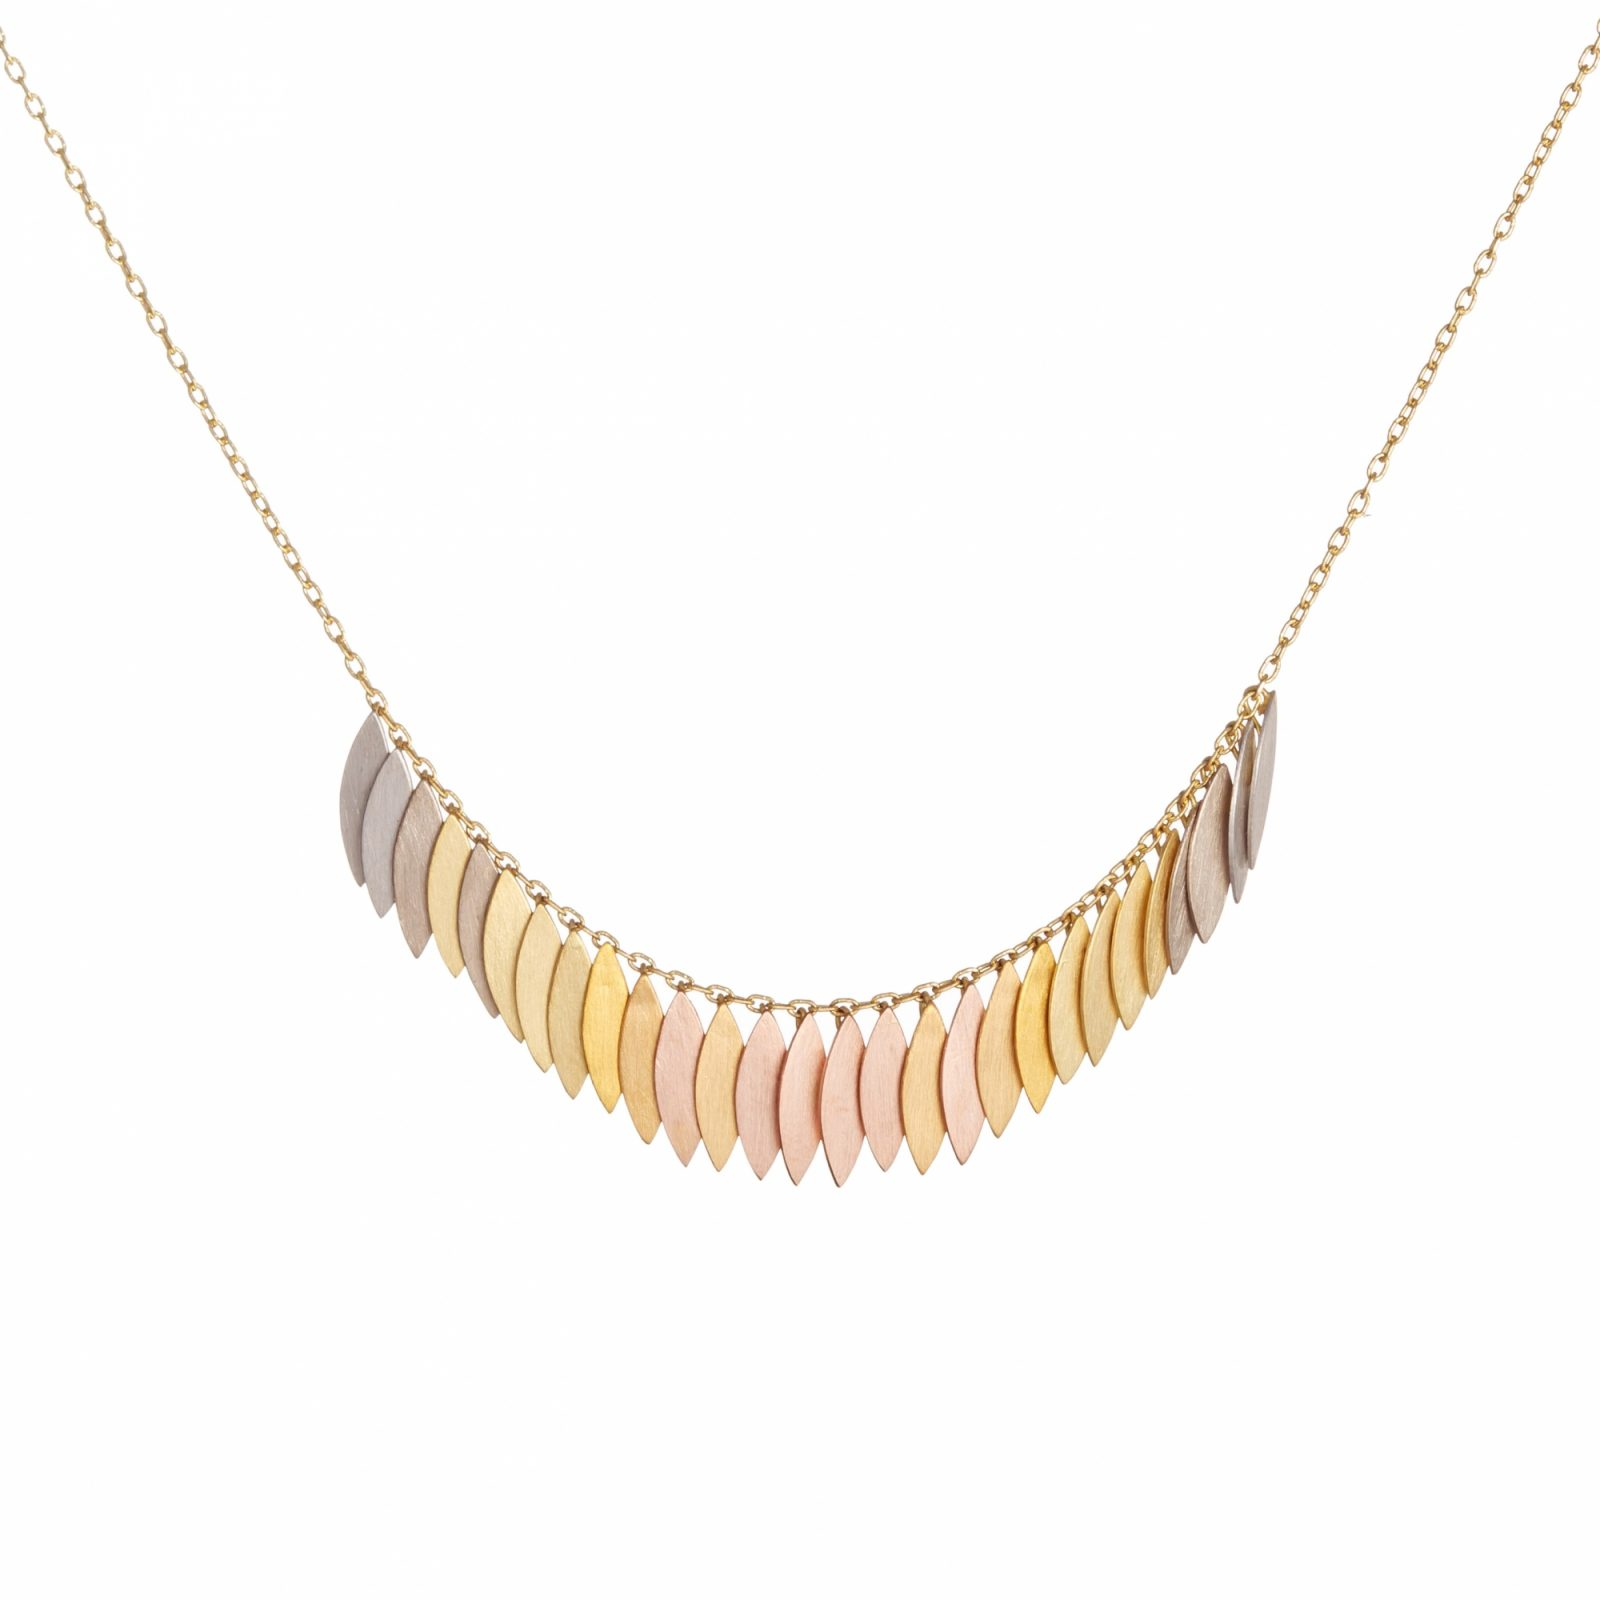 Sia Taylor KN27 RAIN Rainbow Leaf Arc Necklace WB